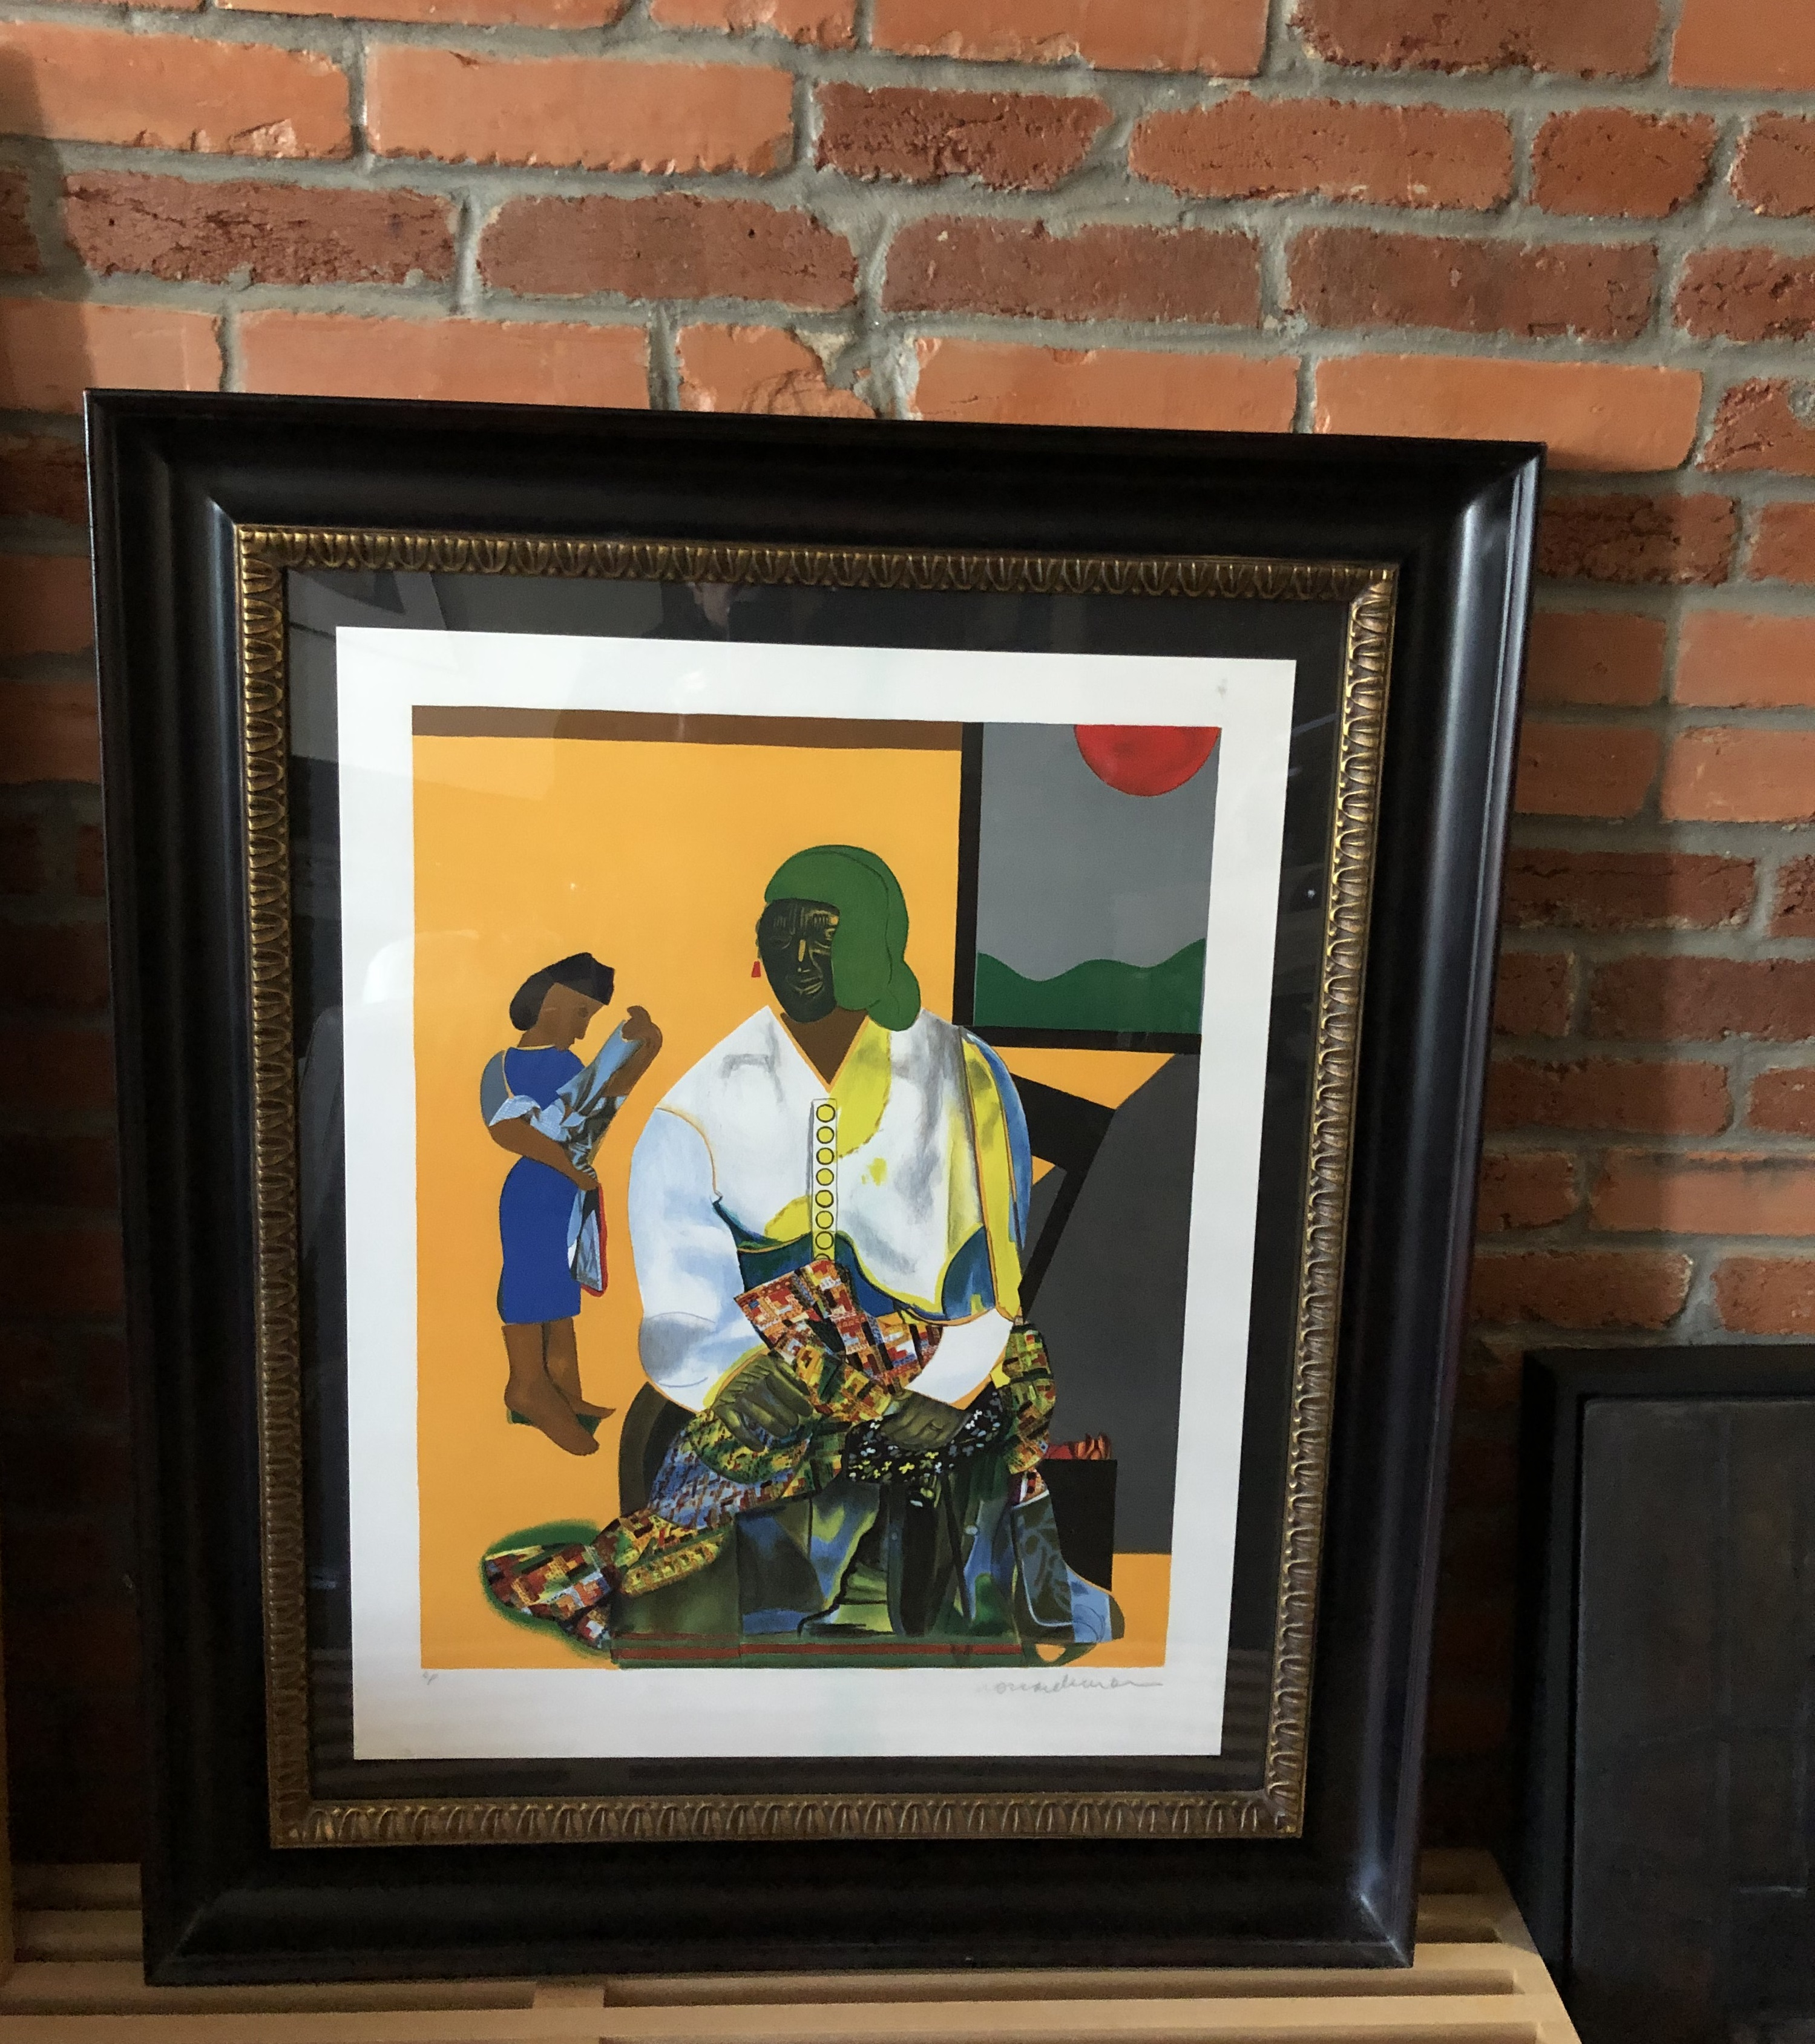 Two Ways To Hang Art On A Brick Wall Without Drilling Holes The Washington Post